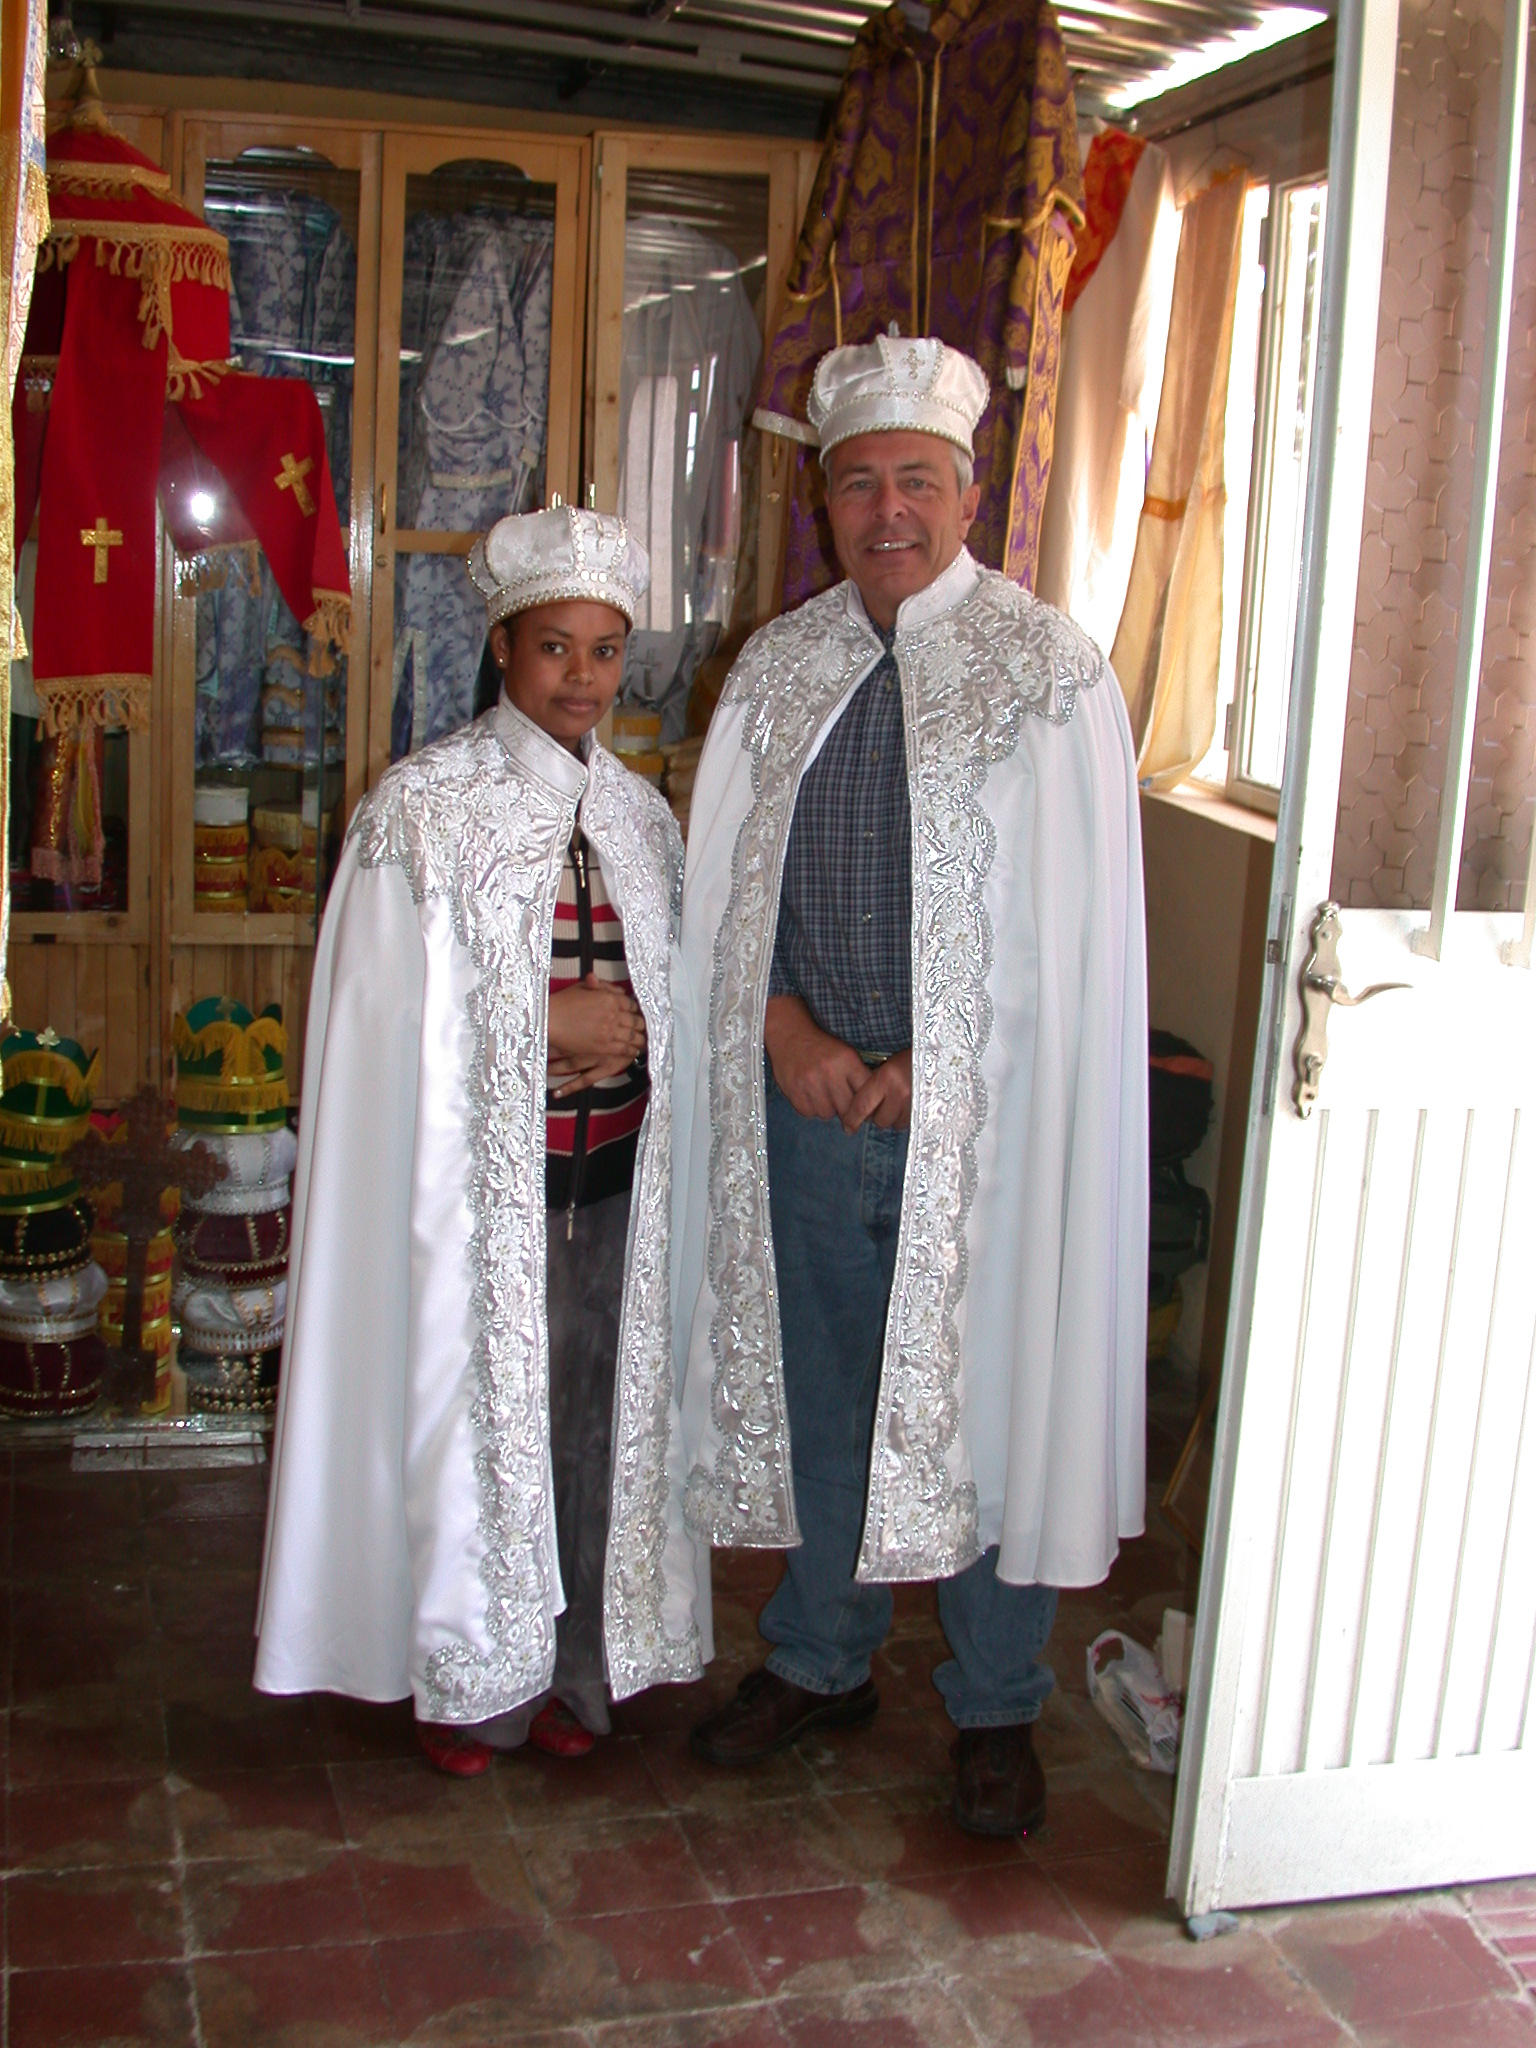 Gordon and Employee in Marriage Gowns at Church Shop in Addis Ababa, Ethiopia